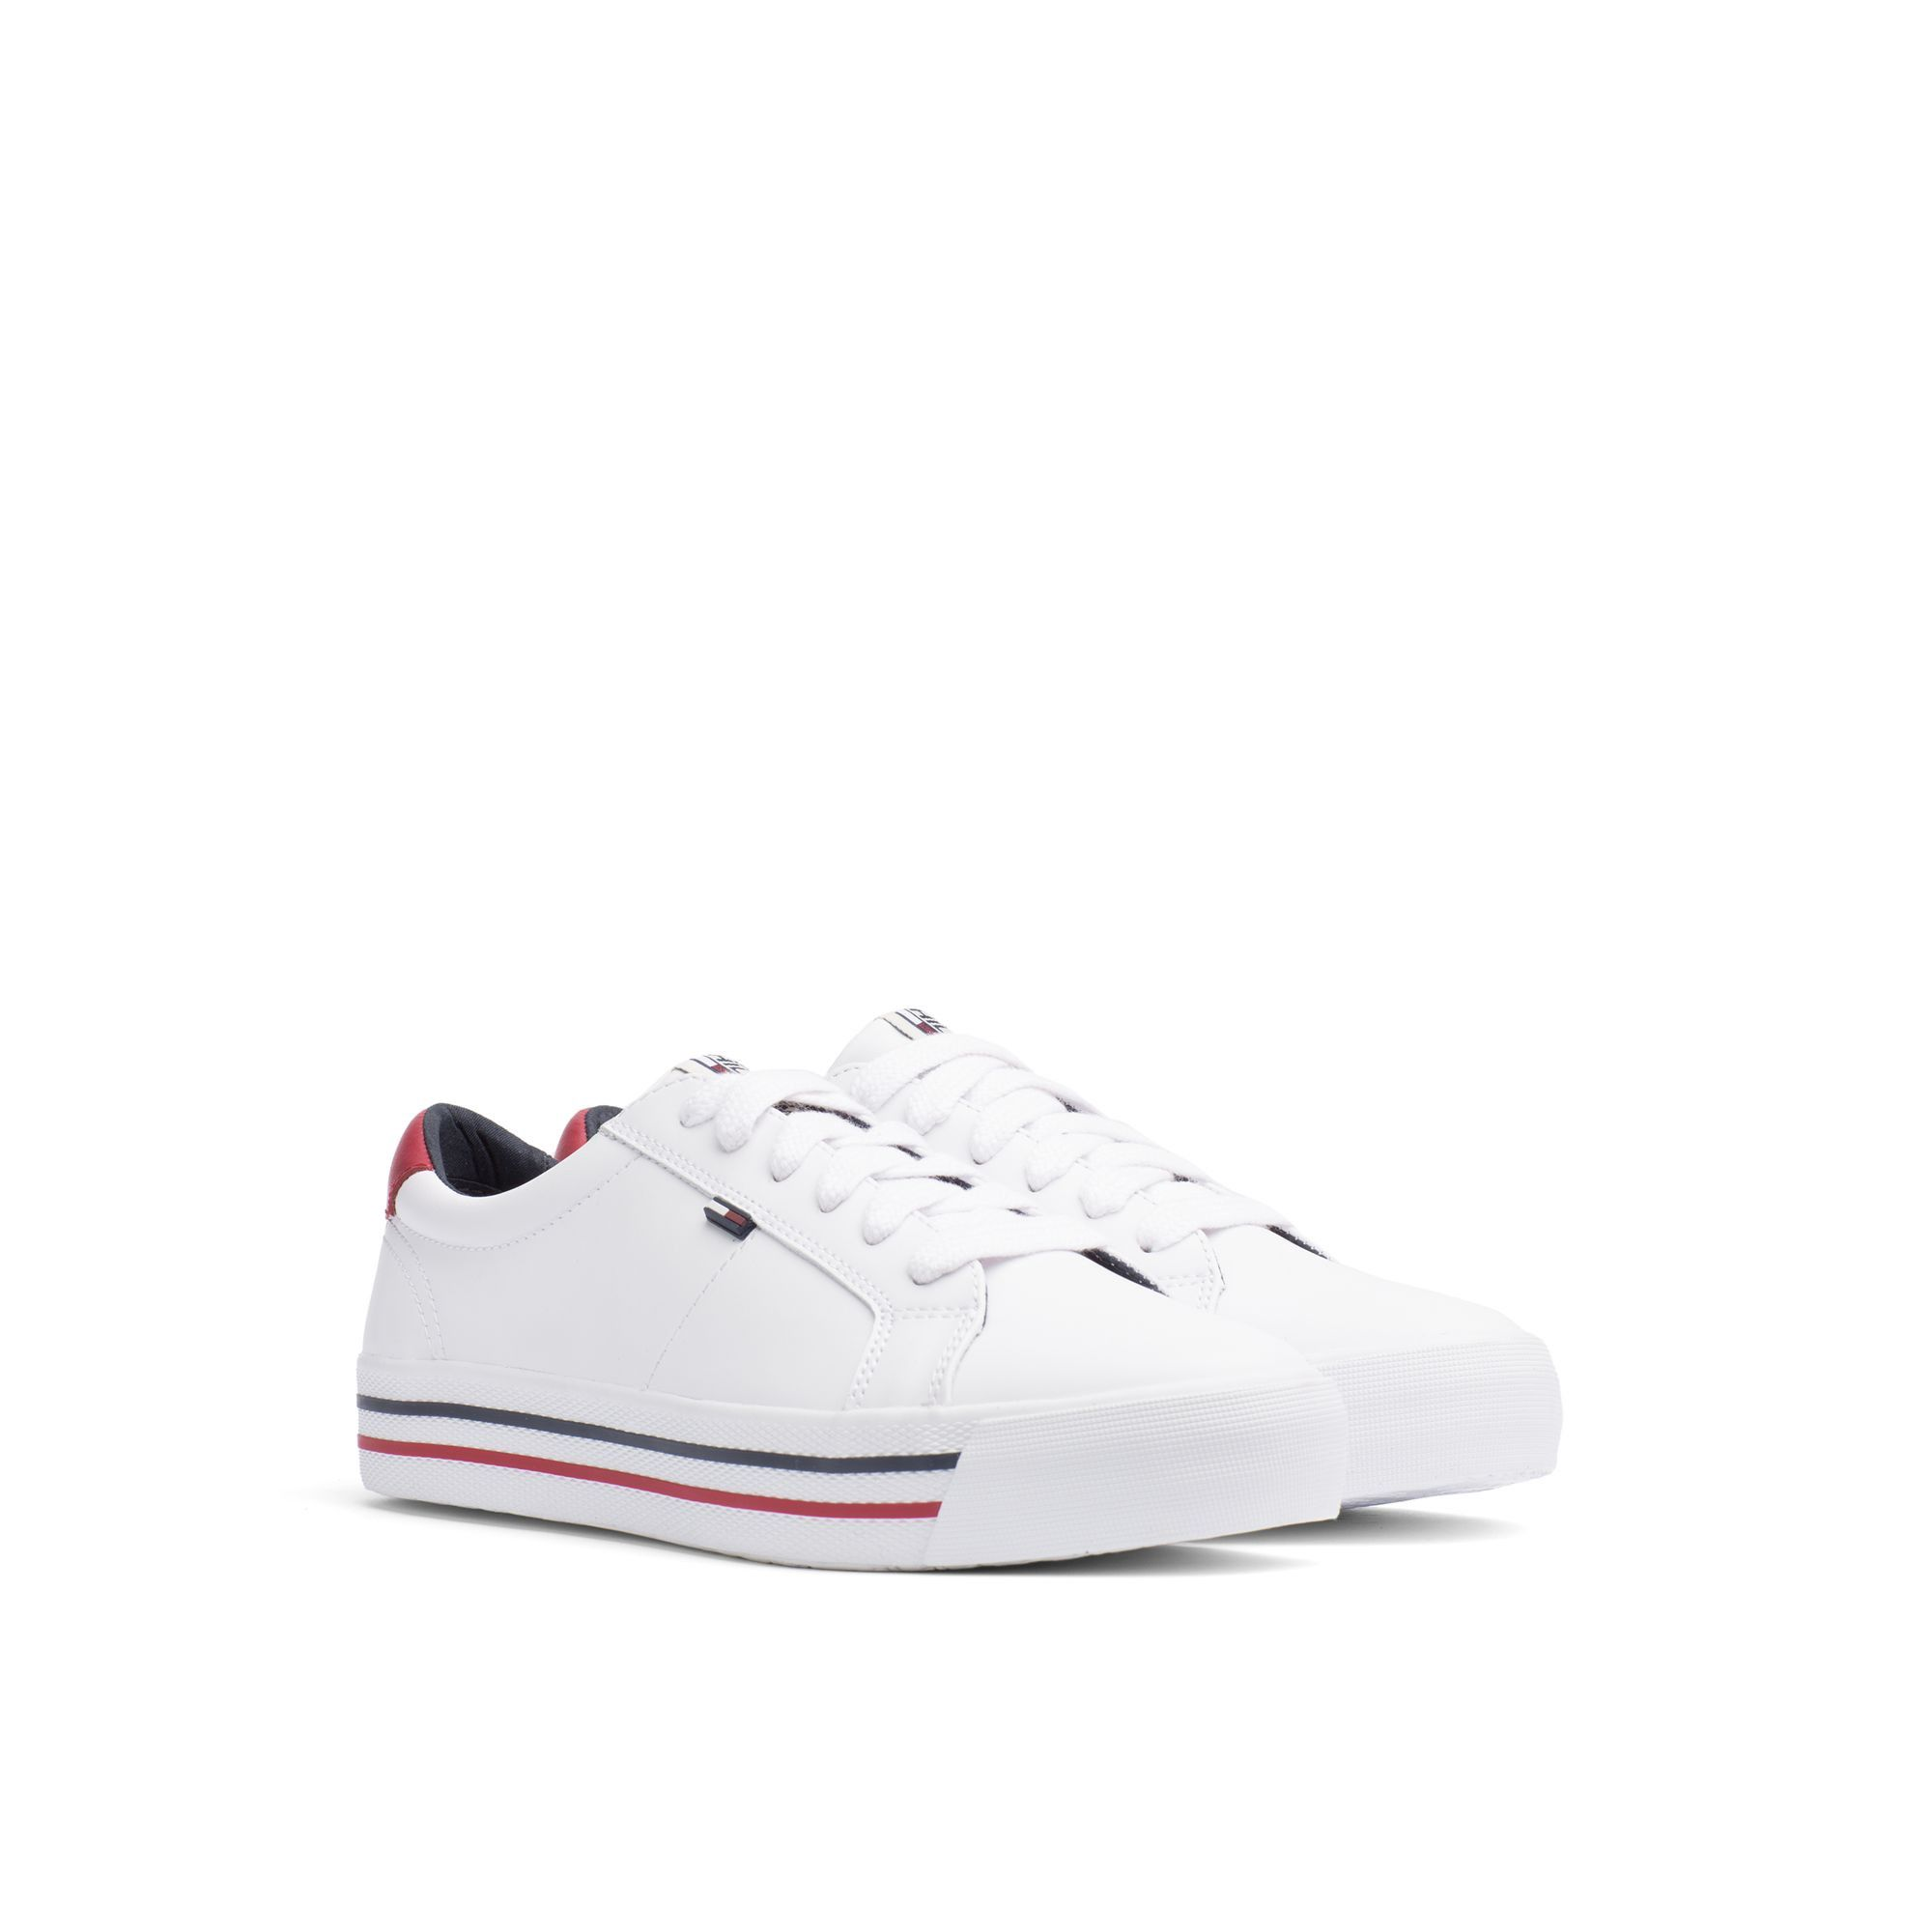 9262bdb6cb35 TOMMY HILFIGER STRIPED SOLE SNEAKER - WHITE.  tommyhilfiger  shoes ...